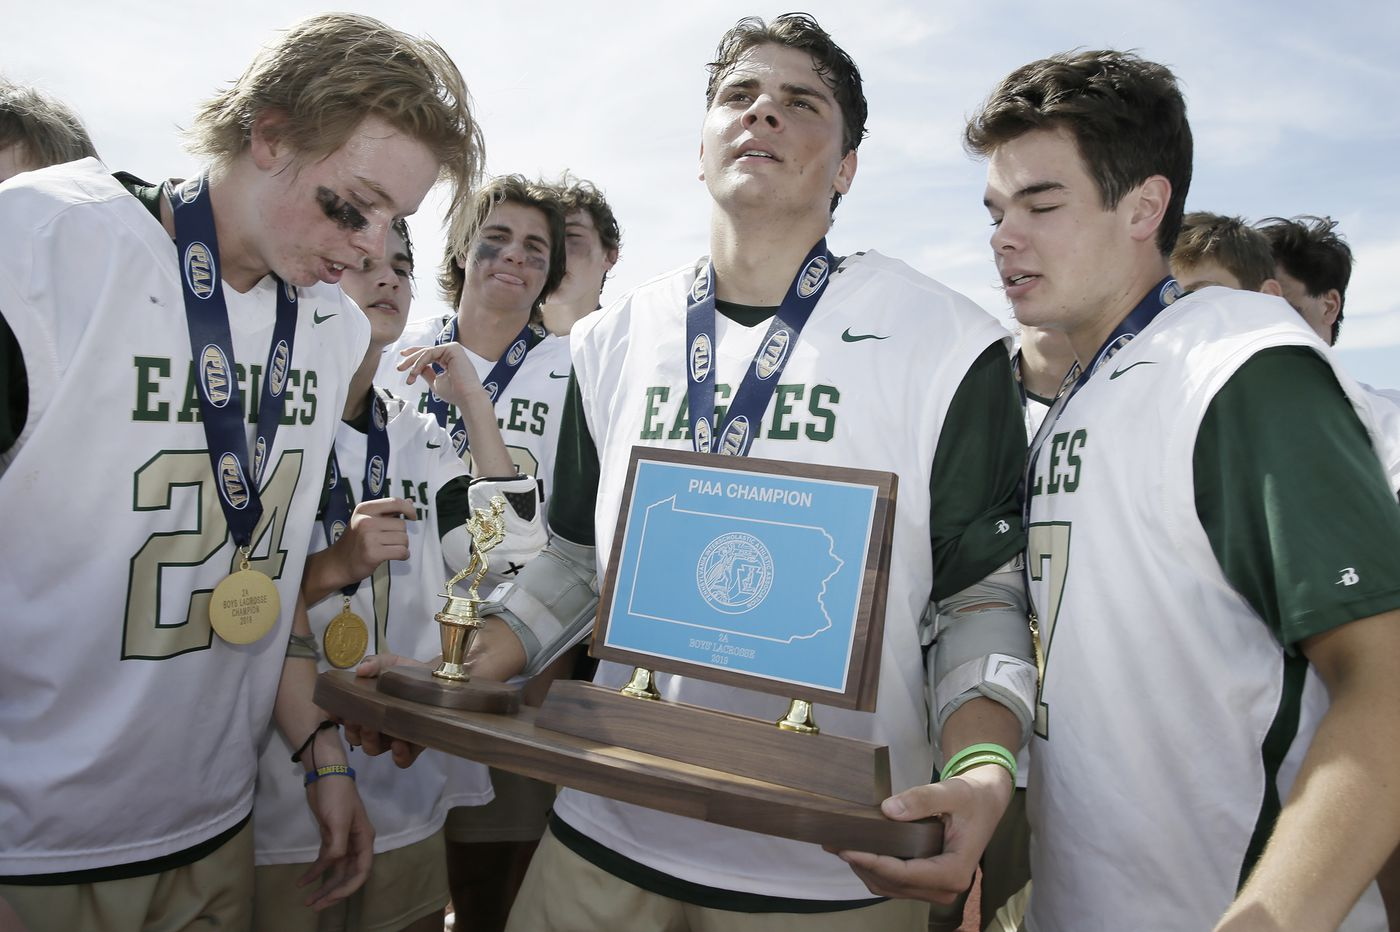 Gabe Goforth helped Bishop Shanahan capture second straight PIAA lacrosse title